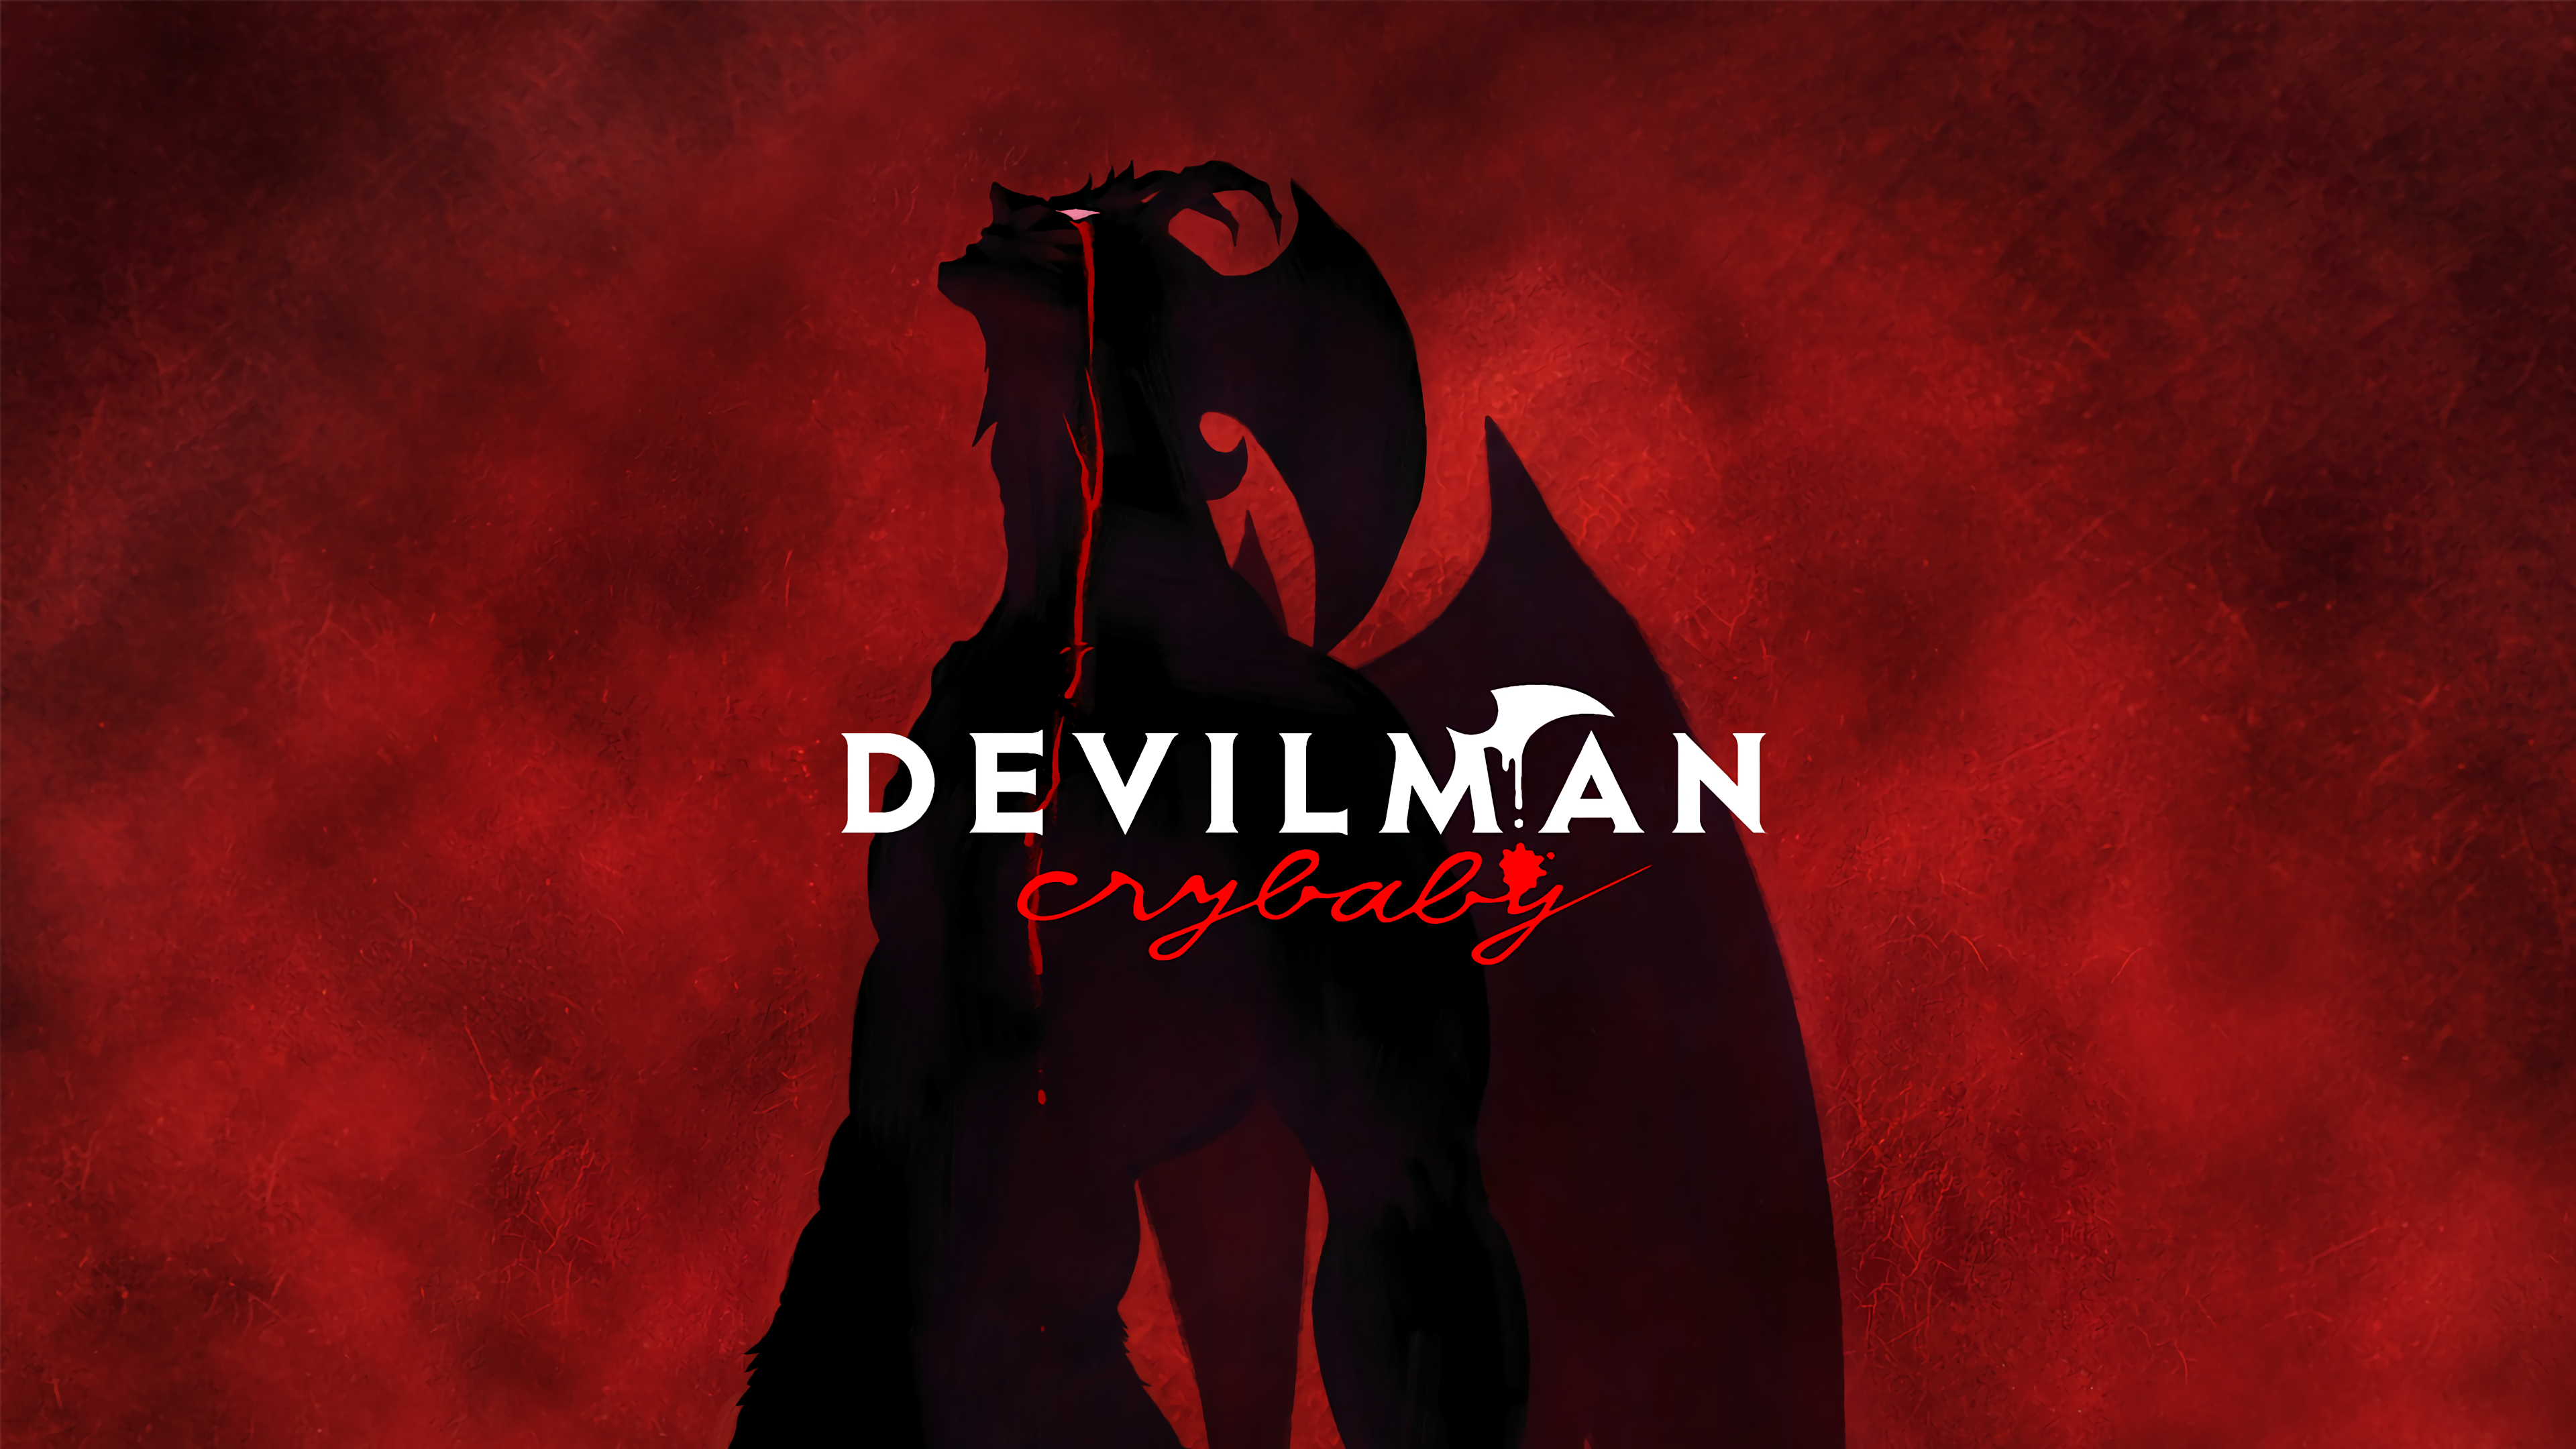 The Best Devilman Crybaby Wallpaper Laptop JPG